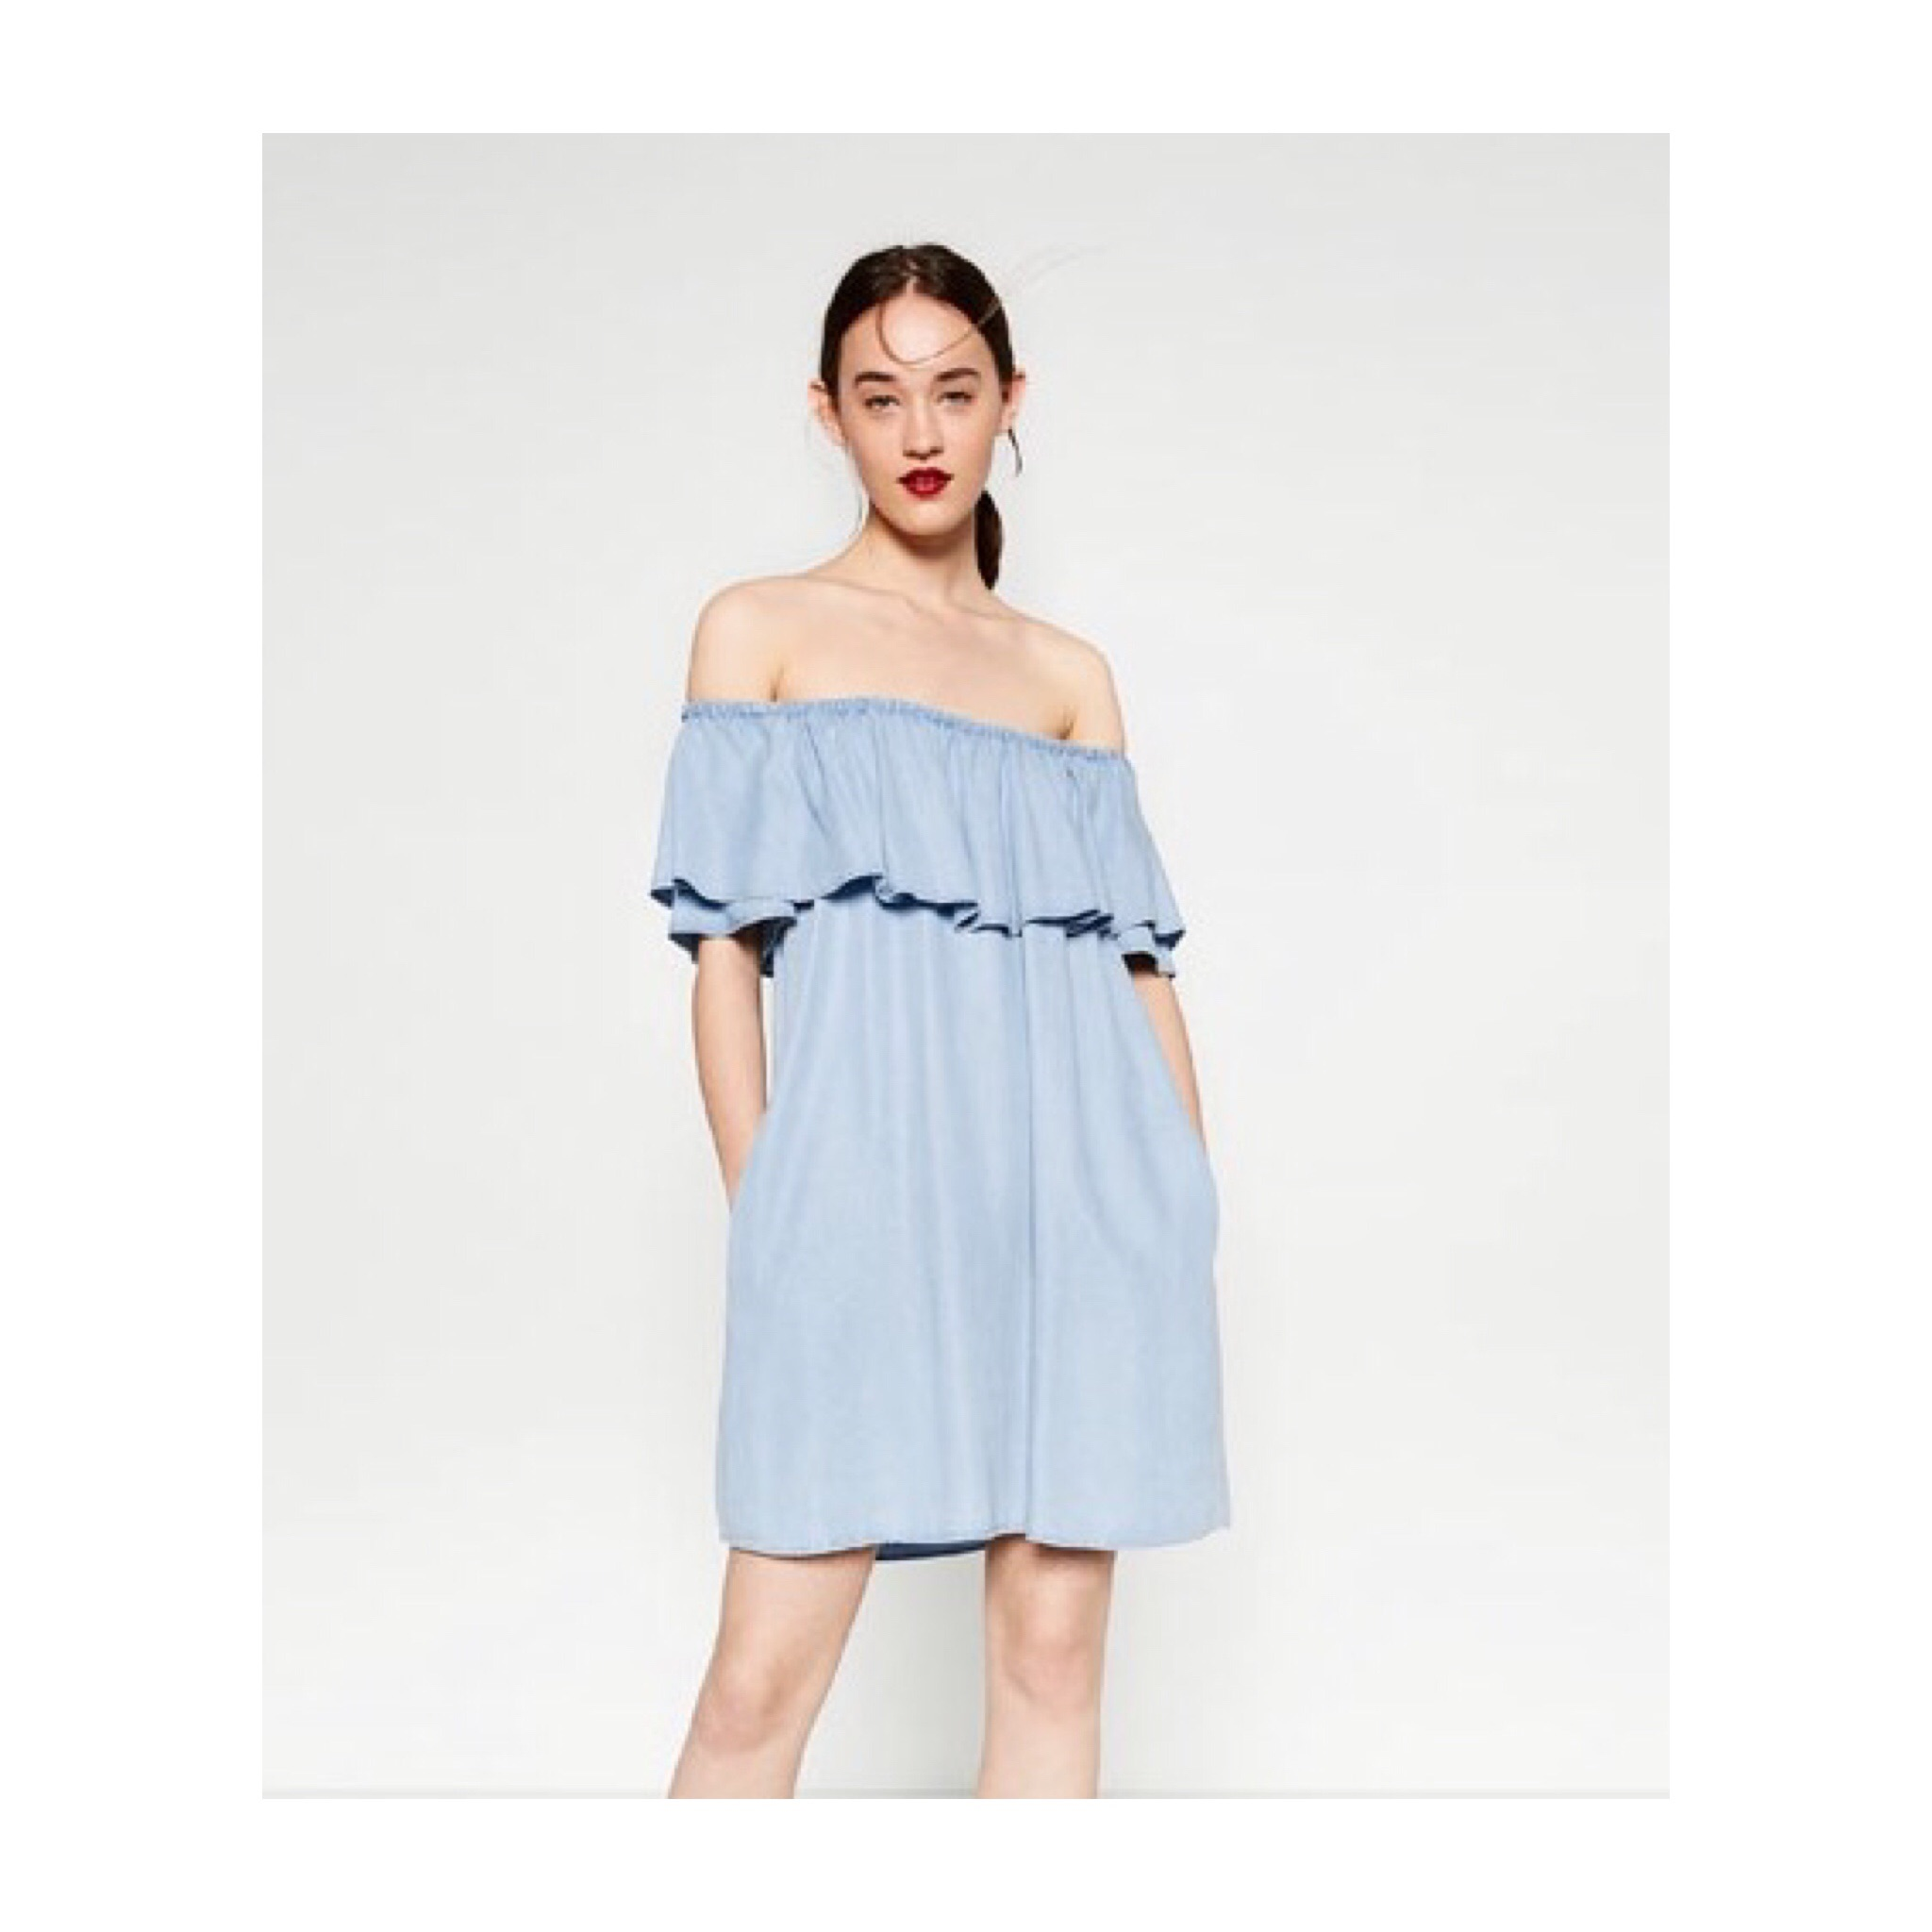 Zara ruffle dress ... I bought this dress before a trip to LA and I love it, so easy to pull on and I love the denim look.